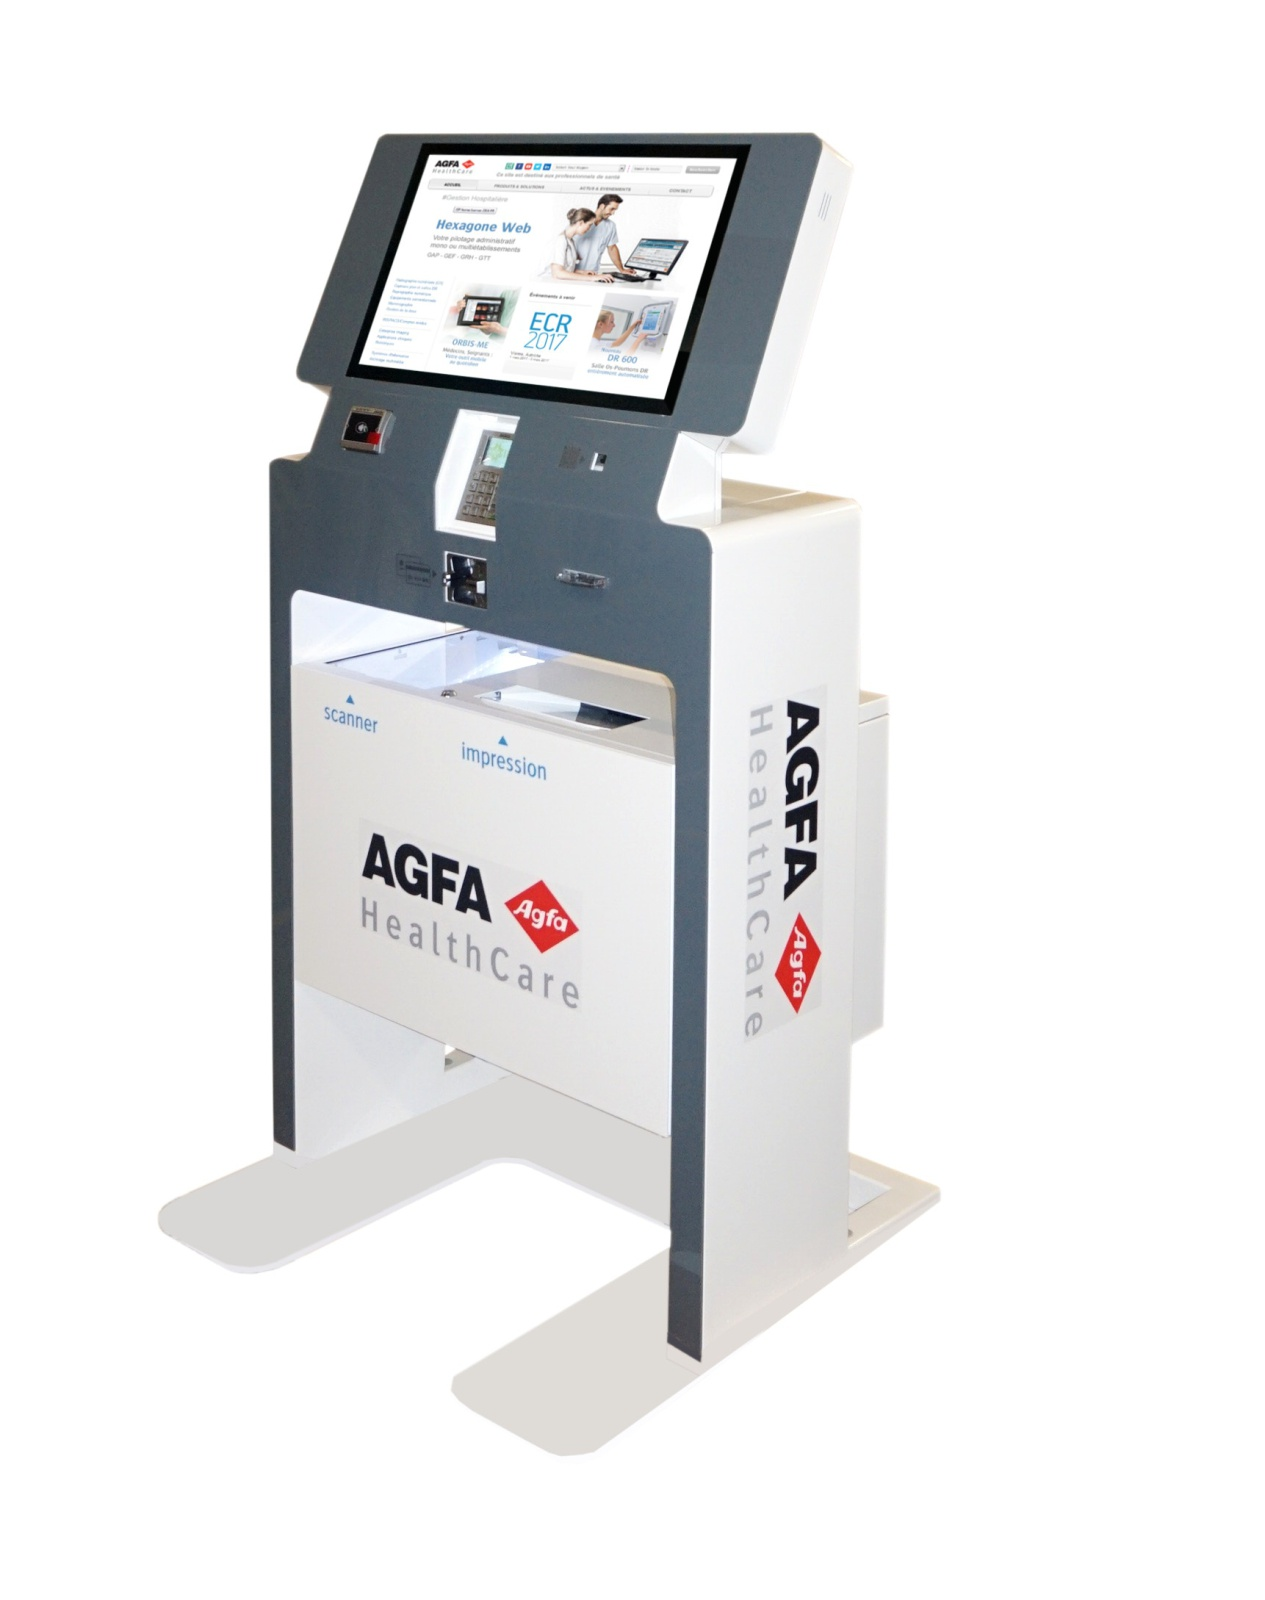 Agfa Healhcare : EasyKiosk solution Ipm France